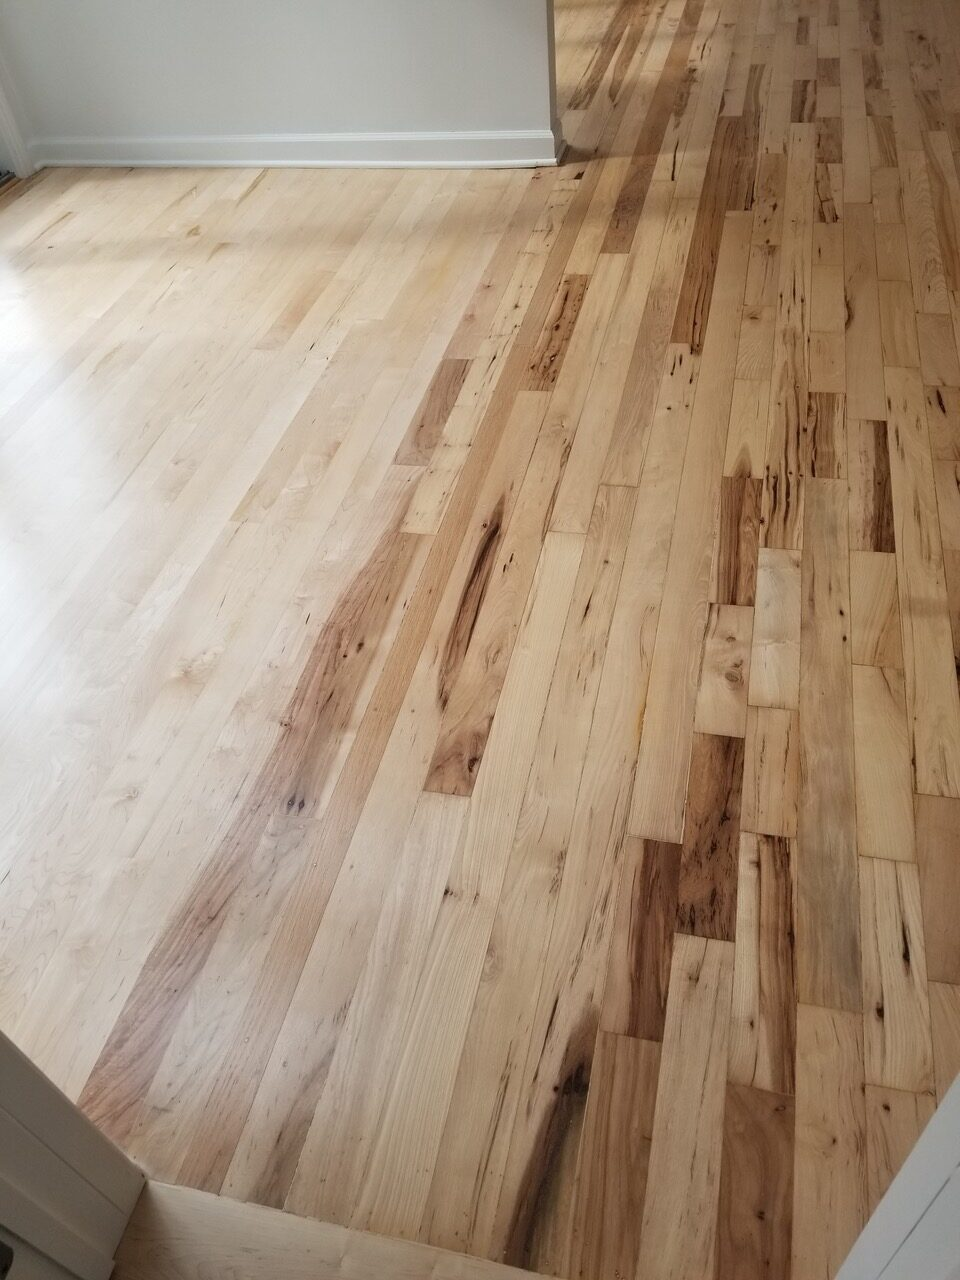 """After"": San Jose residential hickory nutmeg flooring repairs and refinish to bed rooms, hallways and studio. About 1475 square feet."